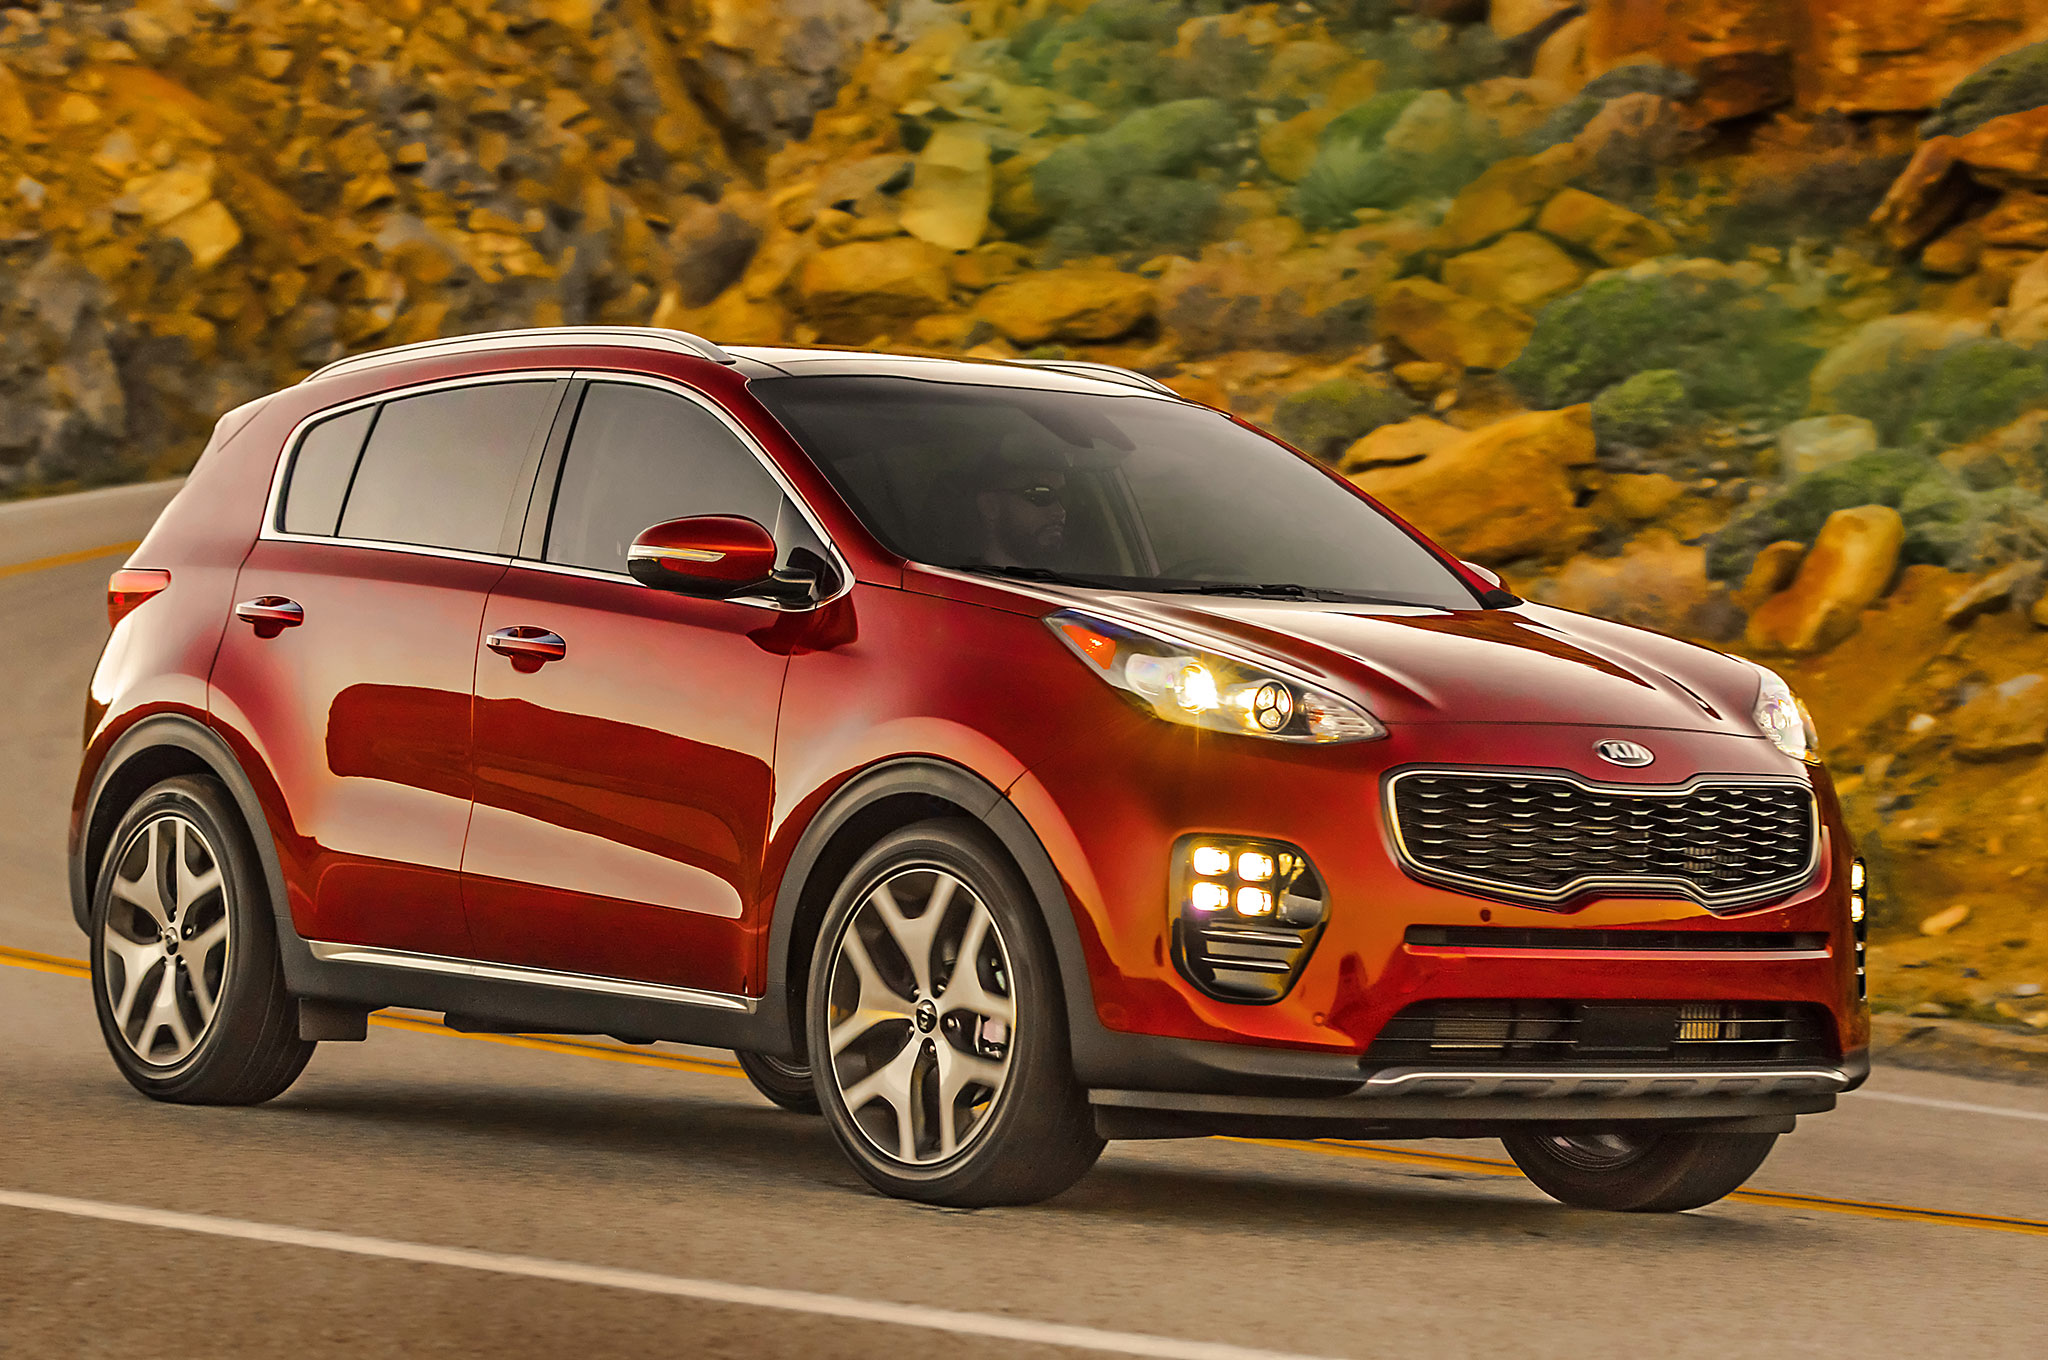 2017 kia sportage named a must test drive vehicle. Black Bedroom Furniture Sets. Home Design Ideas